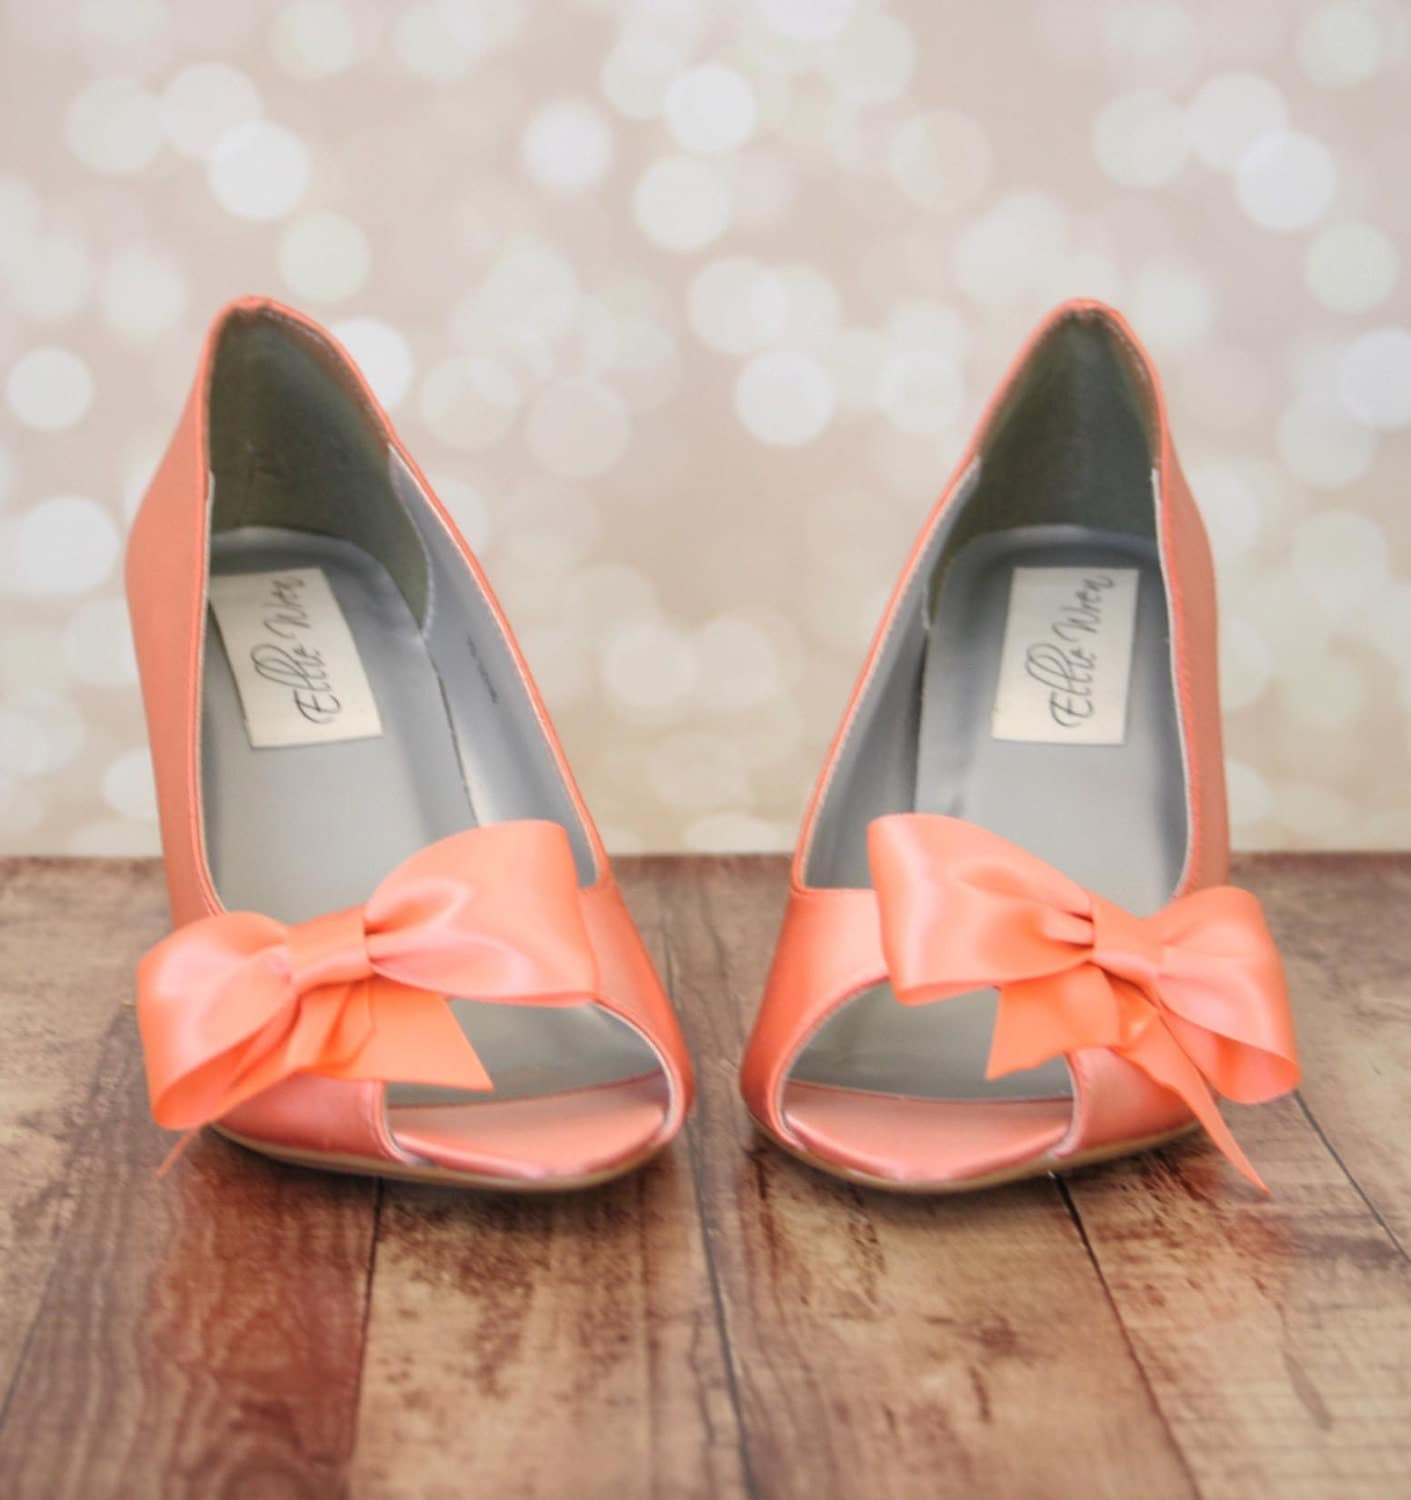 Peach Wedding Shoes 013 - Peach Wedding Shoes